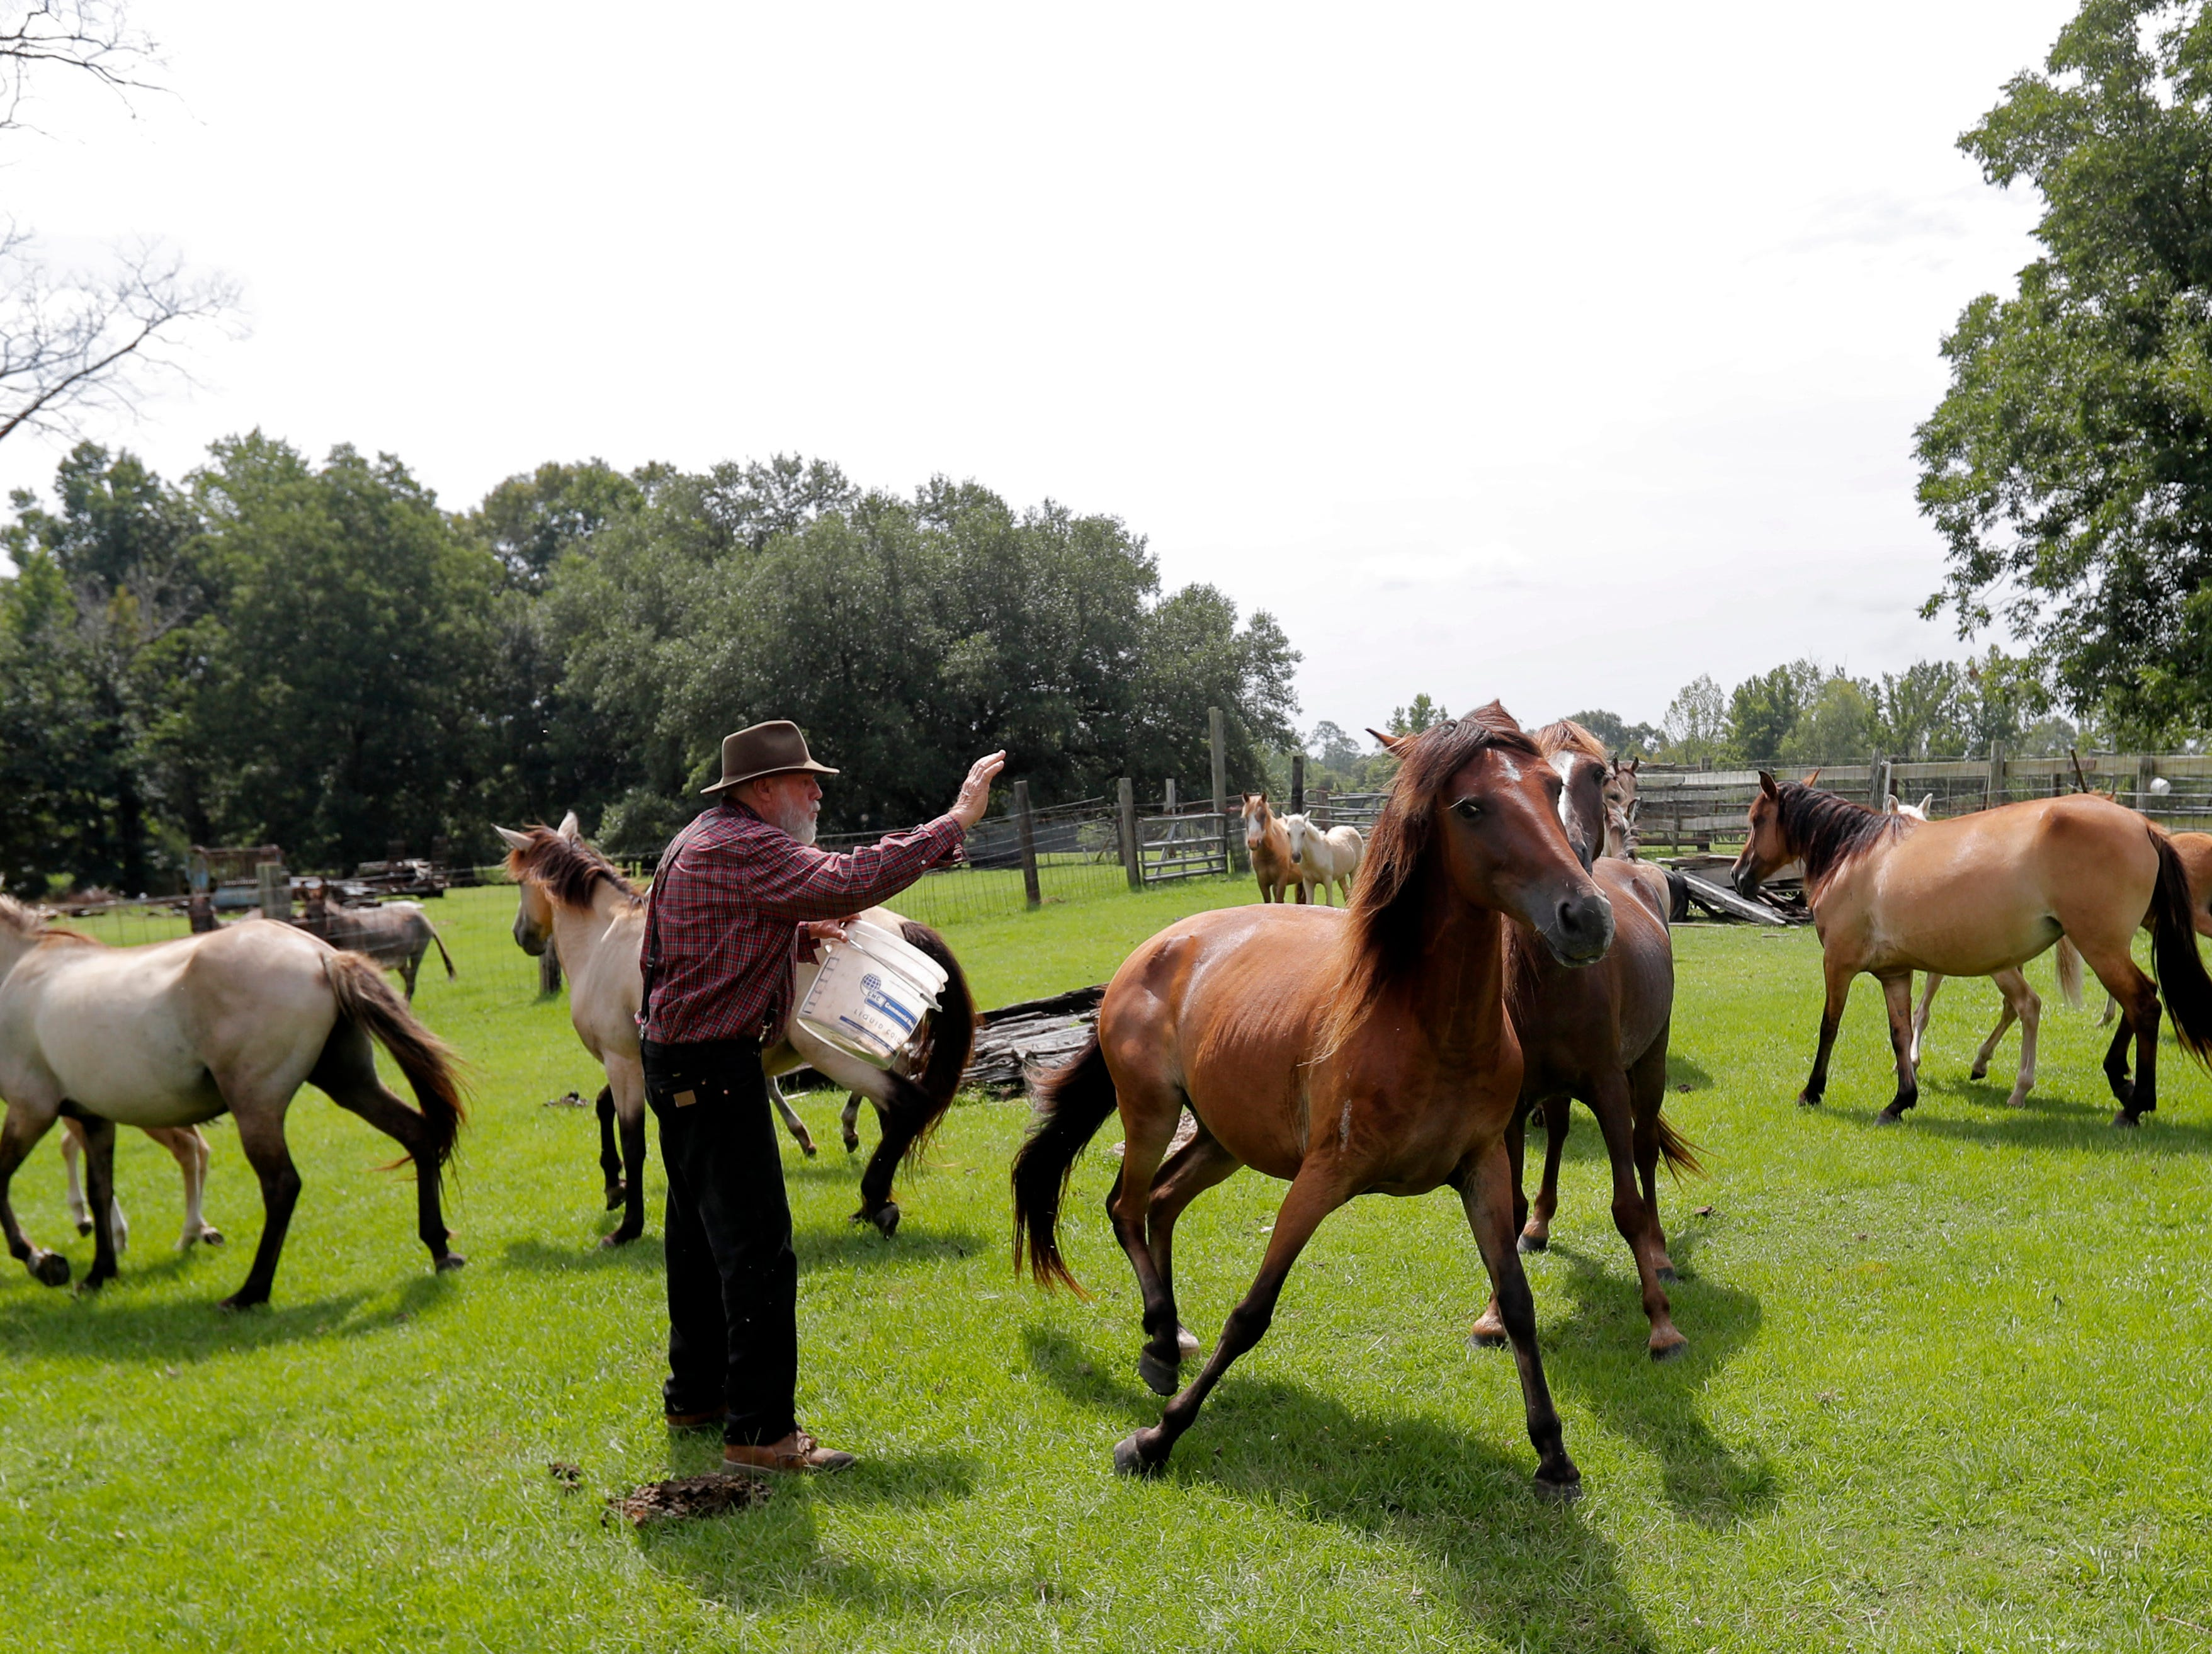 In this July 17, 2018, photo, Bill Frank Brown with Choctaw mares on his farm in Poplarville, Miss. The farm had been in Brown's family since 1881 and the livestock there, even longer. Brown had three stallions back then, including DeSoto. He called them pine tacky horses. The Texas A&M veterinary school tested samples of the stallions' DNA, and they matched those of Rickman's Choctaws. (AP Photo/Gerald Herbert)